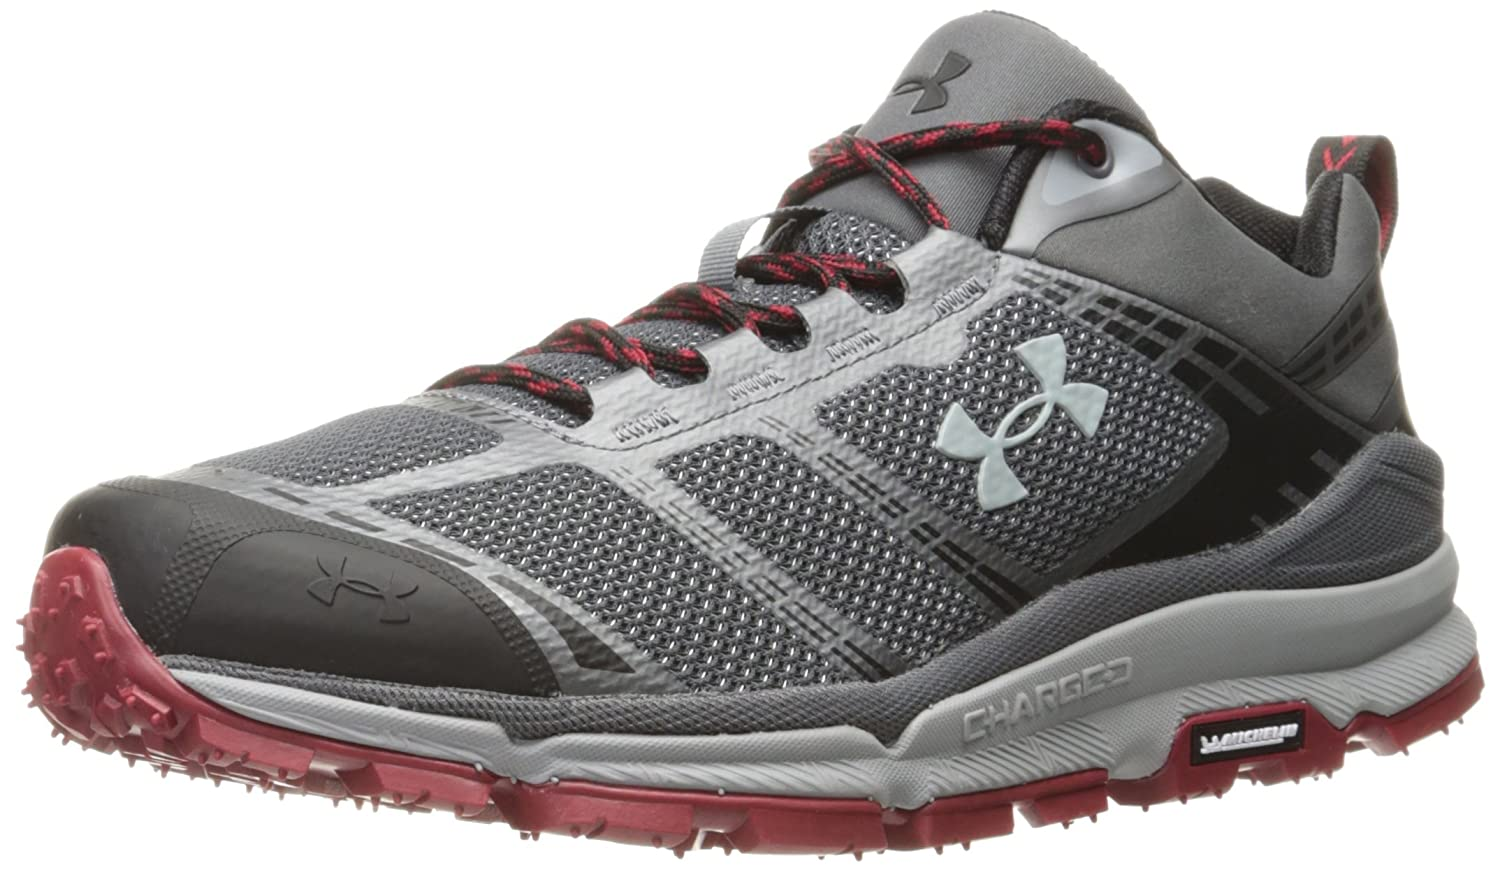 Under Armour Men's Verge Low Hiking Boot, Under Armour Shoes